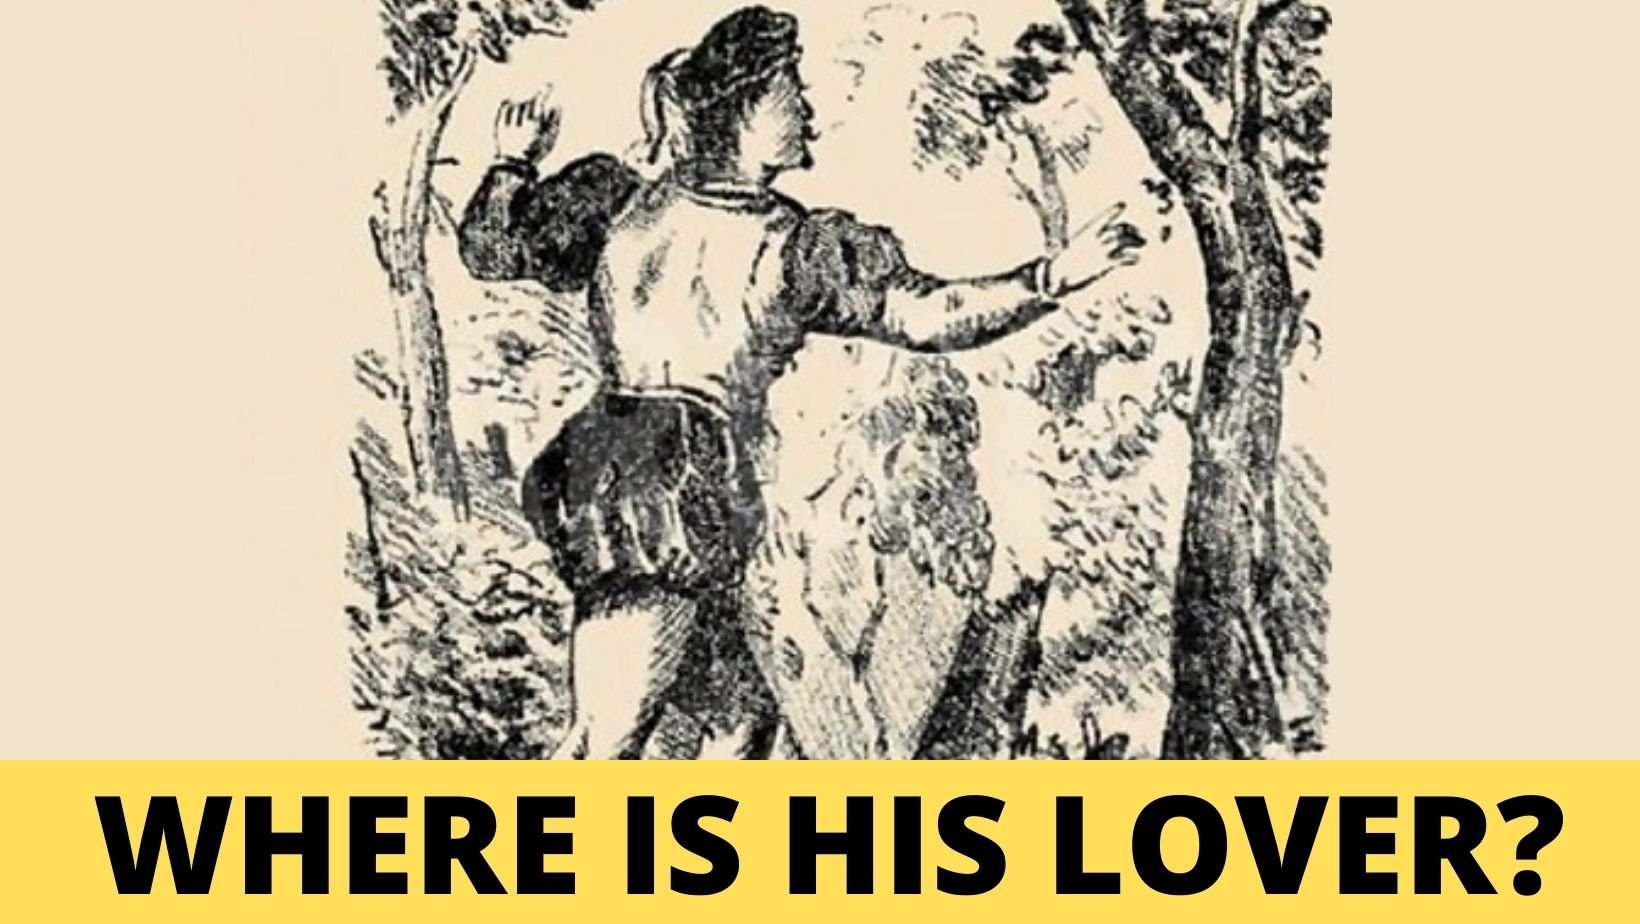 small joys thumbnail.jpg?resize=412,275 - A Man Is Desperately Looking For His Lover, Can You SEE her?